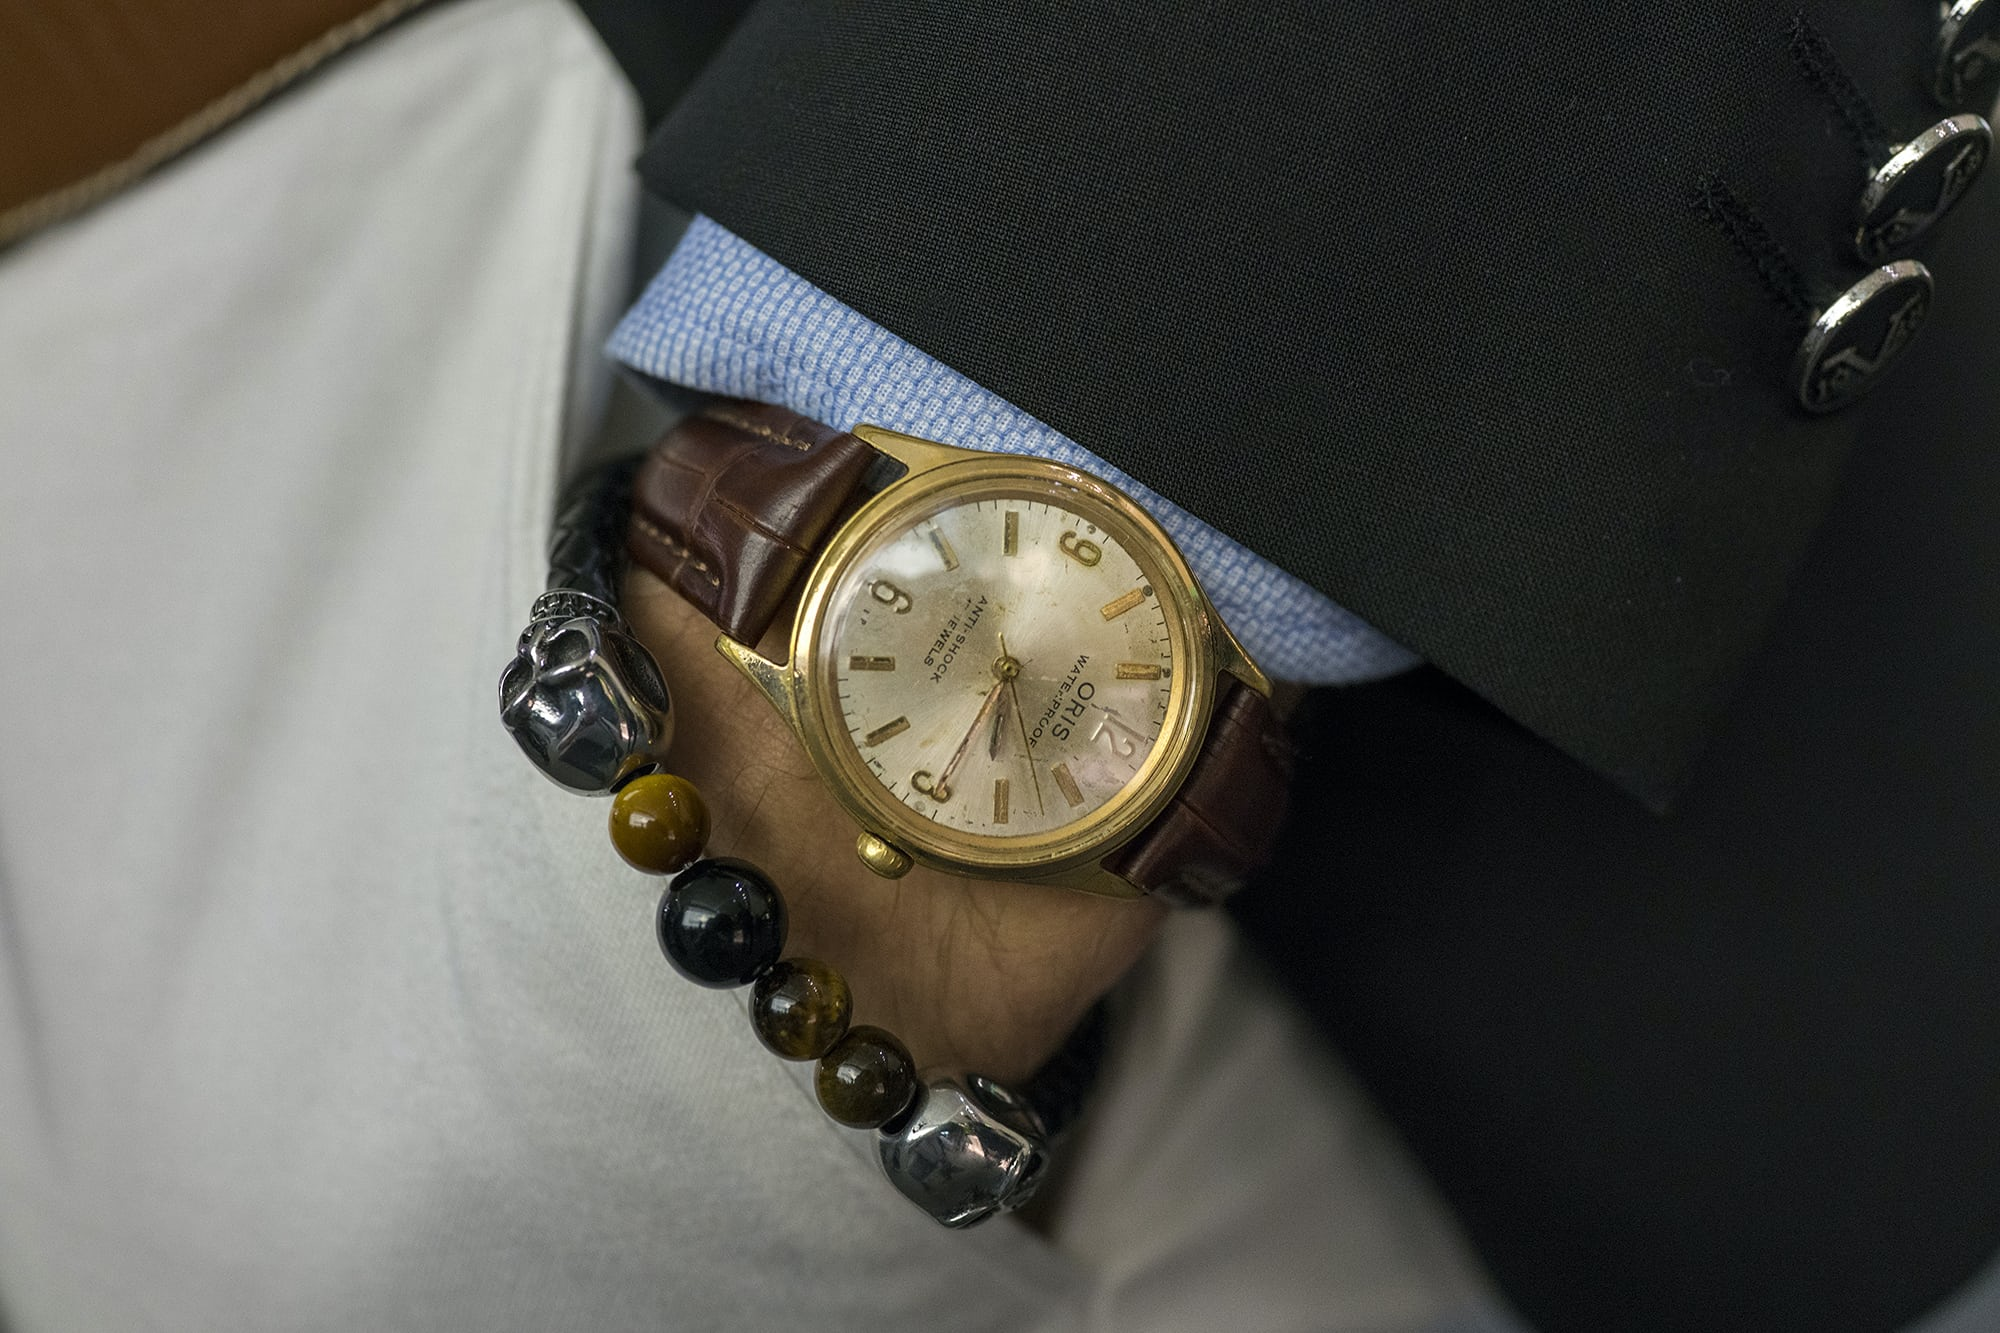 Photo Report: The Fashion And Watches Of Baselworld 2018 Photo Report: The Fashion And Watches Of Baselworld 2018 DSC00760 copy